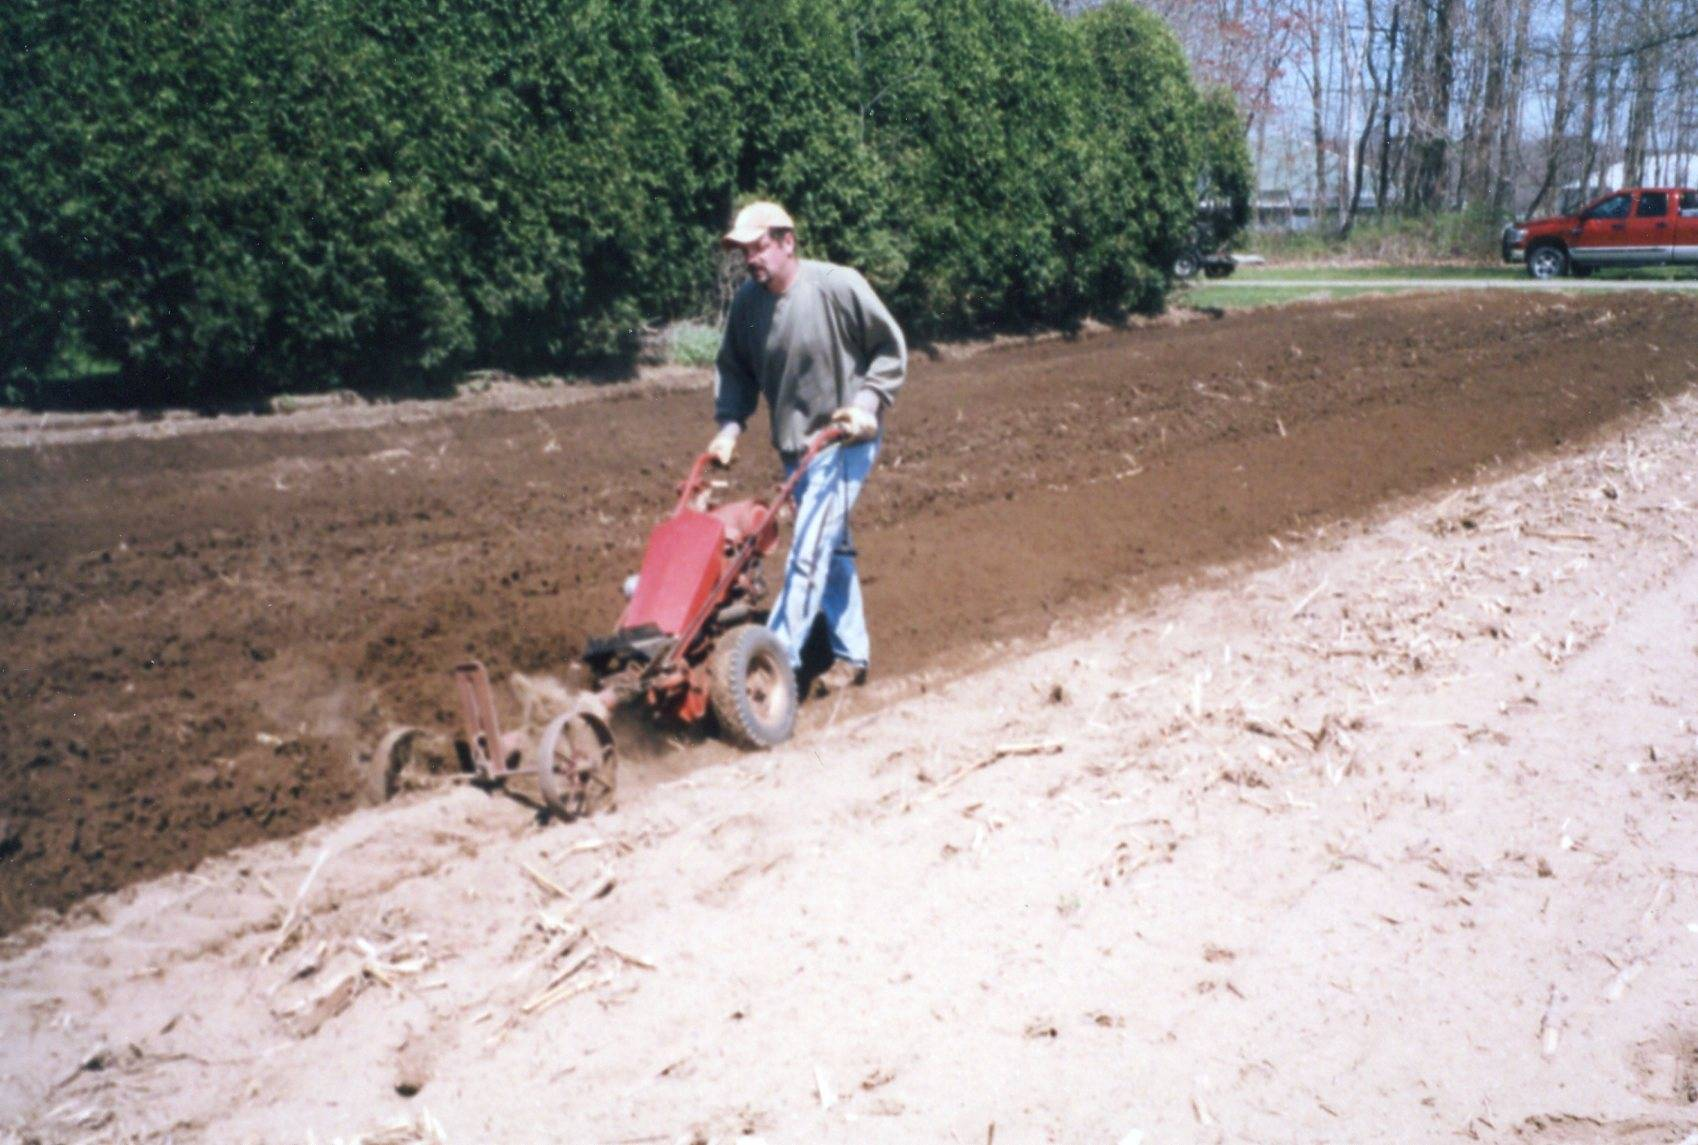 GRAVELY L8 ROTARY PLOW HICKORY LAKE